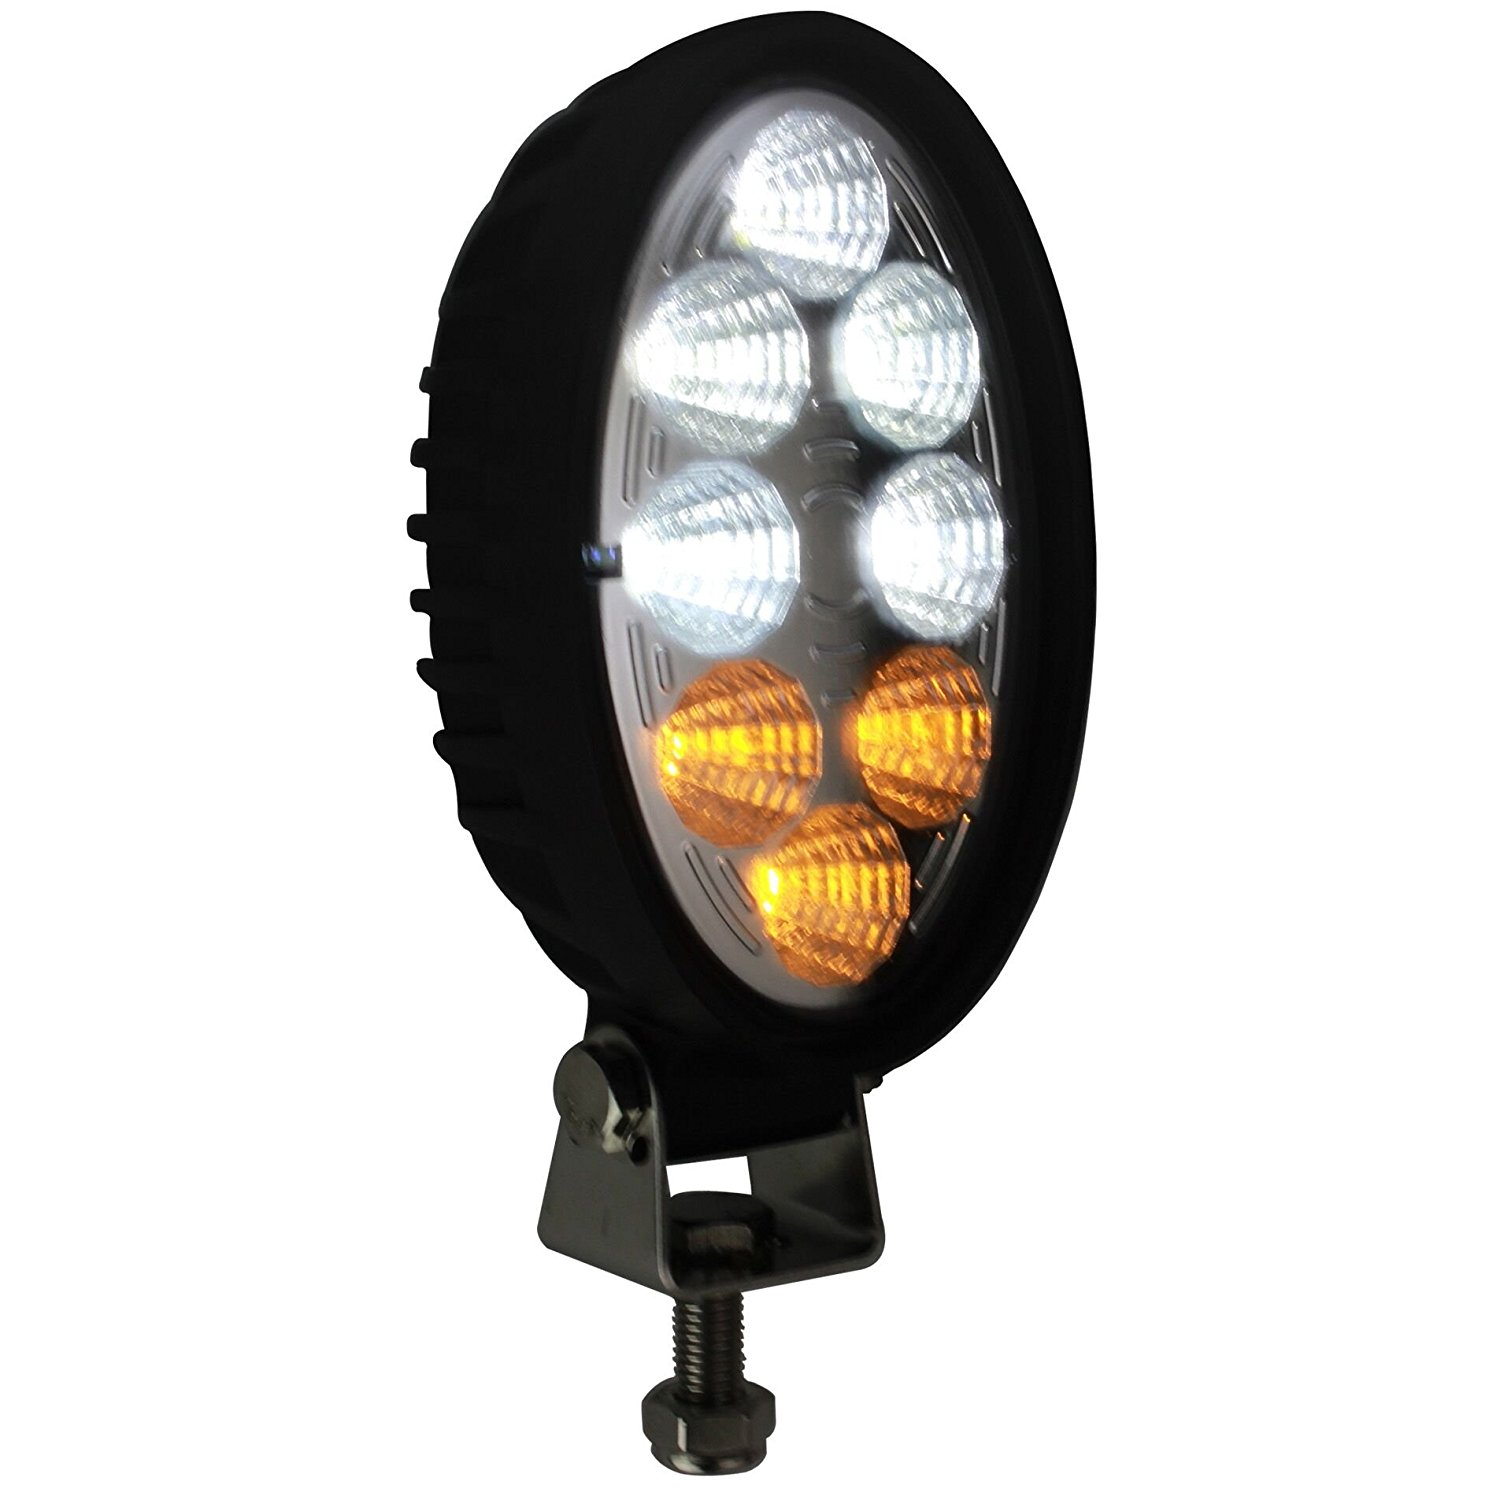 Forklift Truck LED Waring Lights Turn Signal Alert Pedestrians And Other Vehicles (White/Amber)